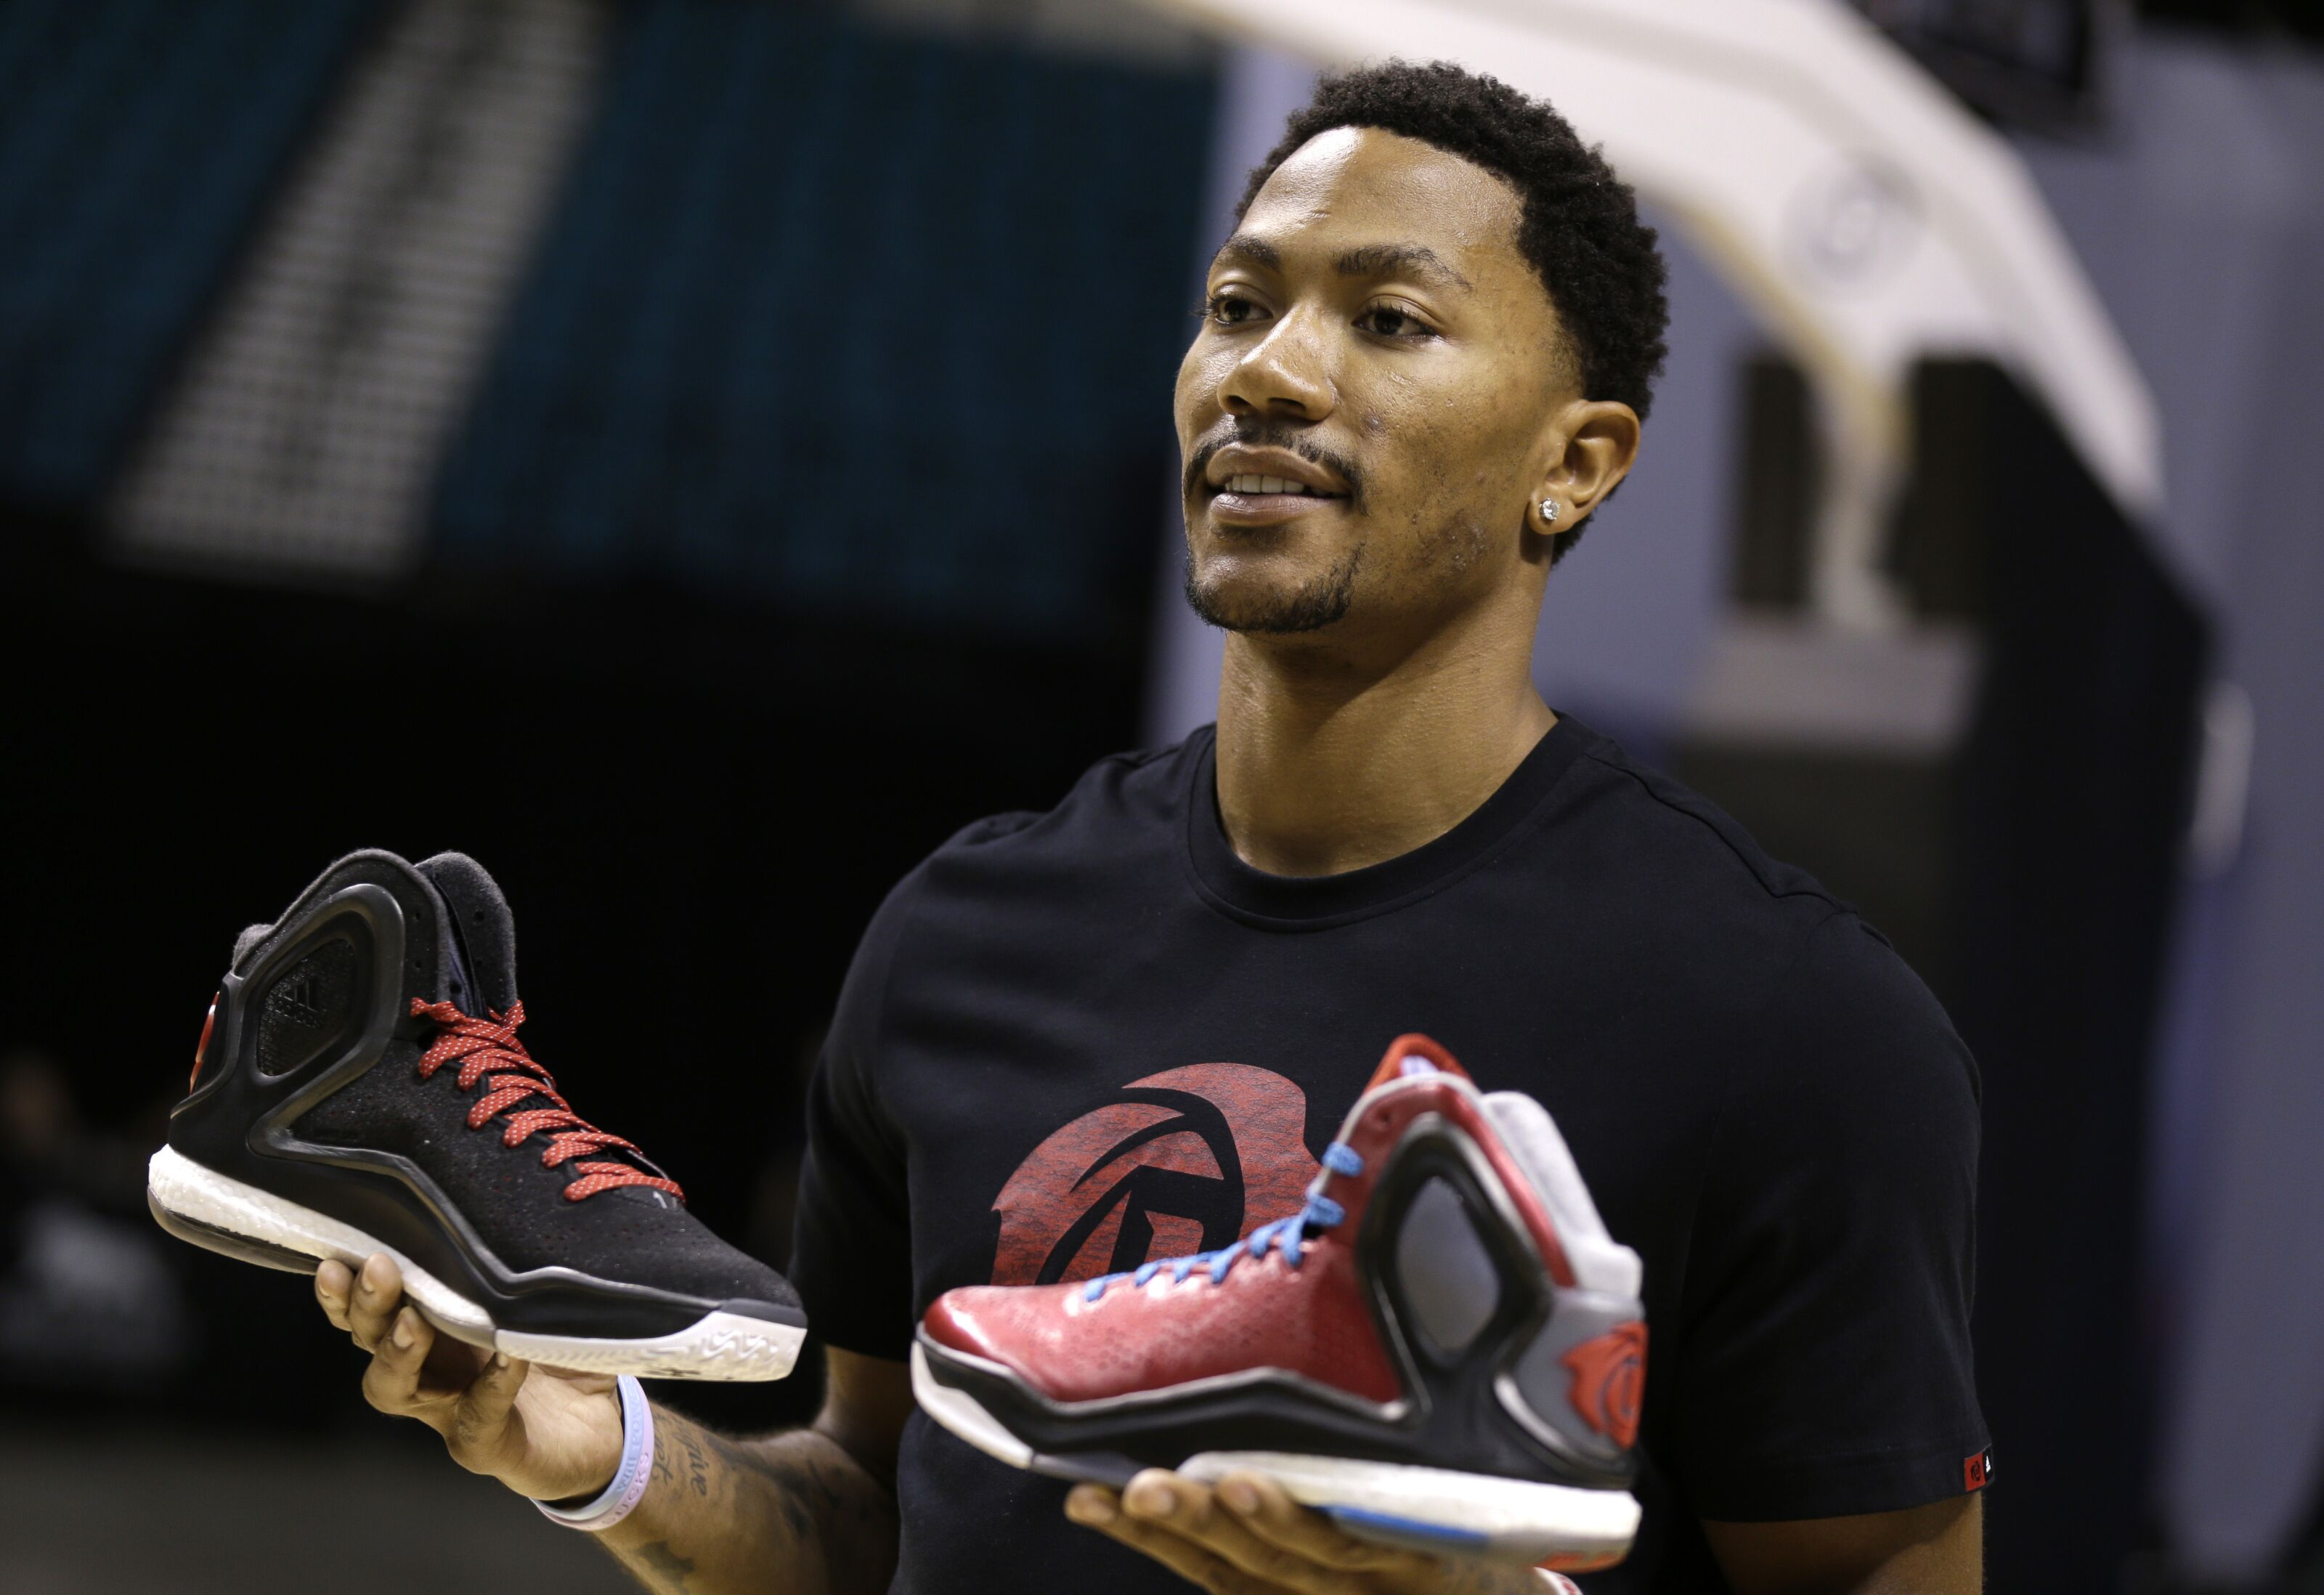 size 40 ea4a9 9e78c Adidas will retro the Derrick Rose signature line beginning next year